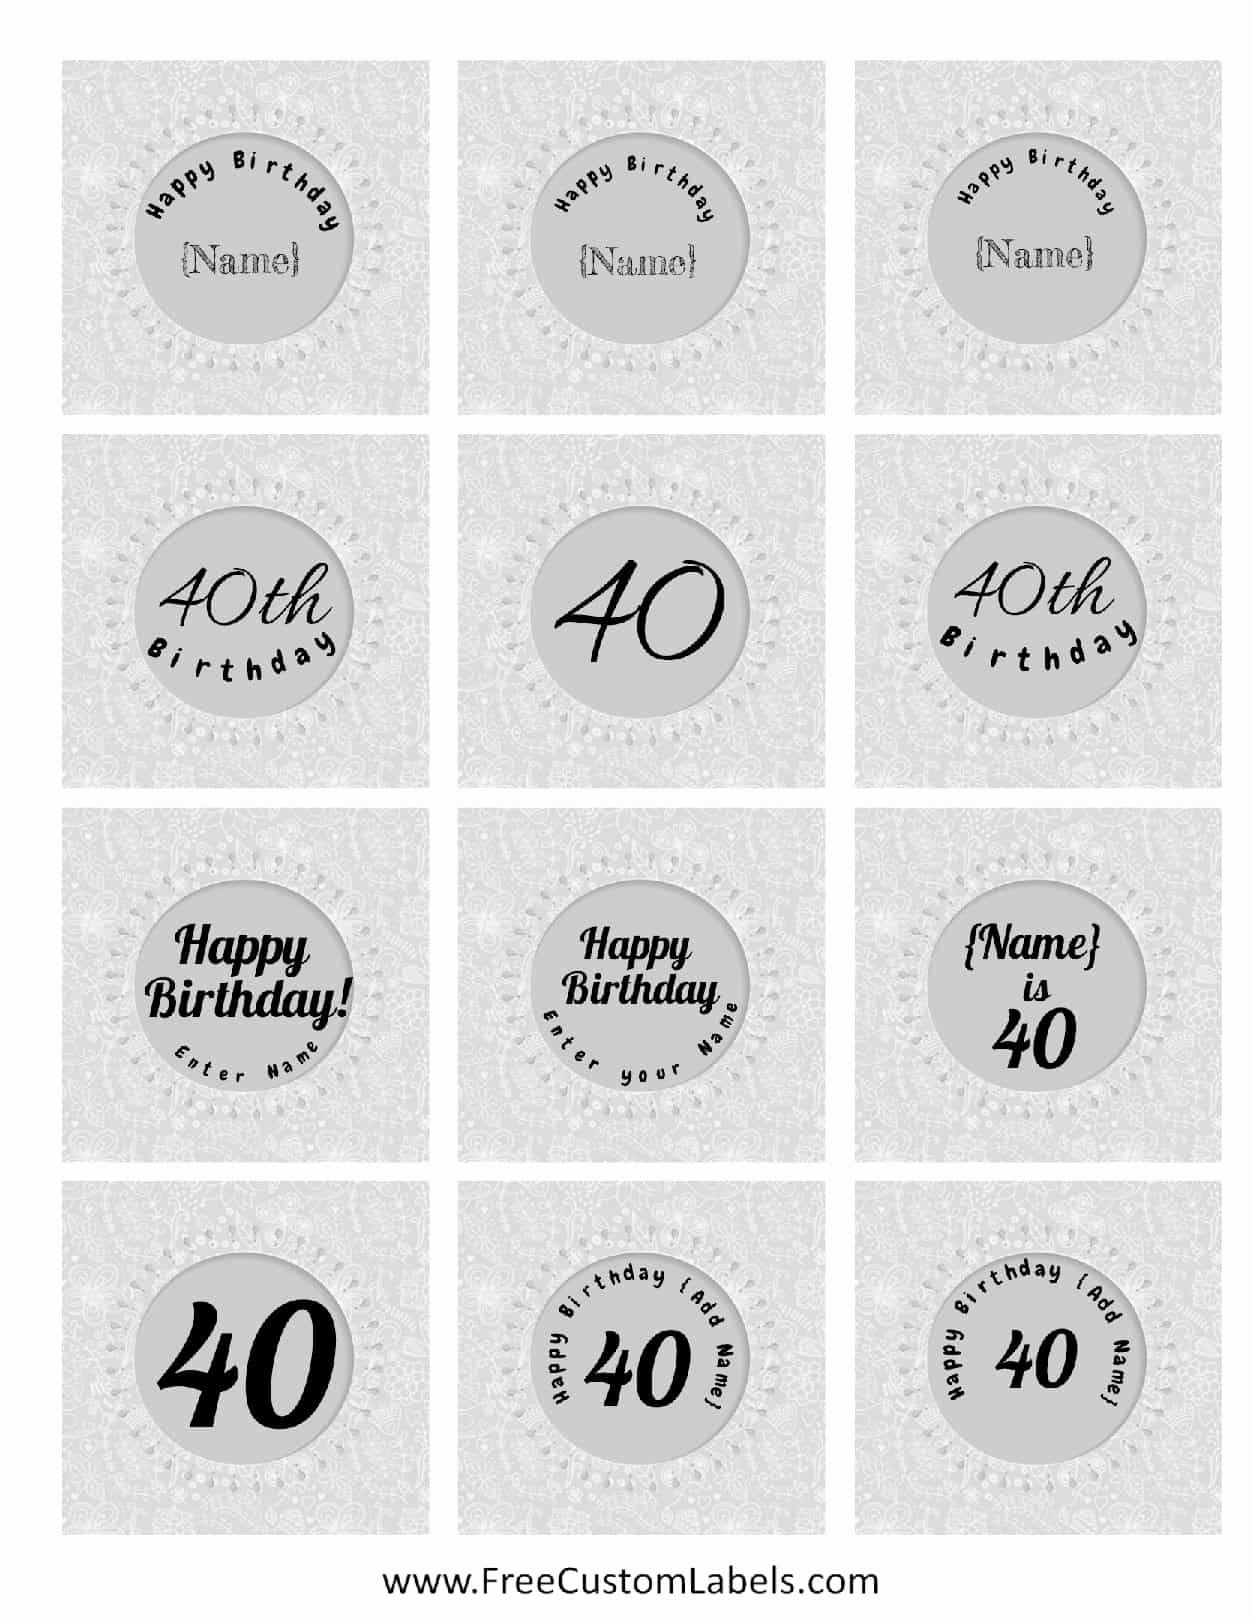 40th Birthday Free Printables Awesome 40th Birthday Cupcake toppers Free & Customizable